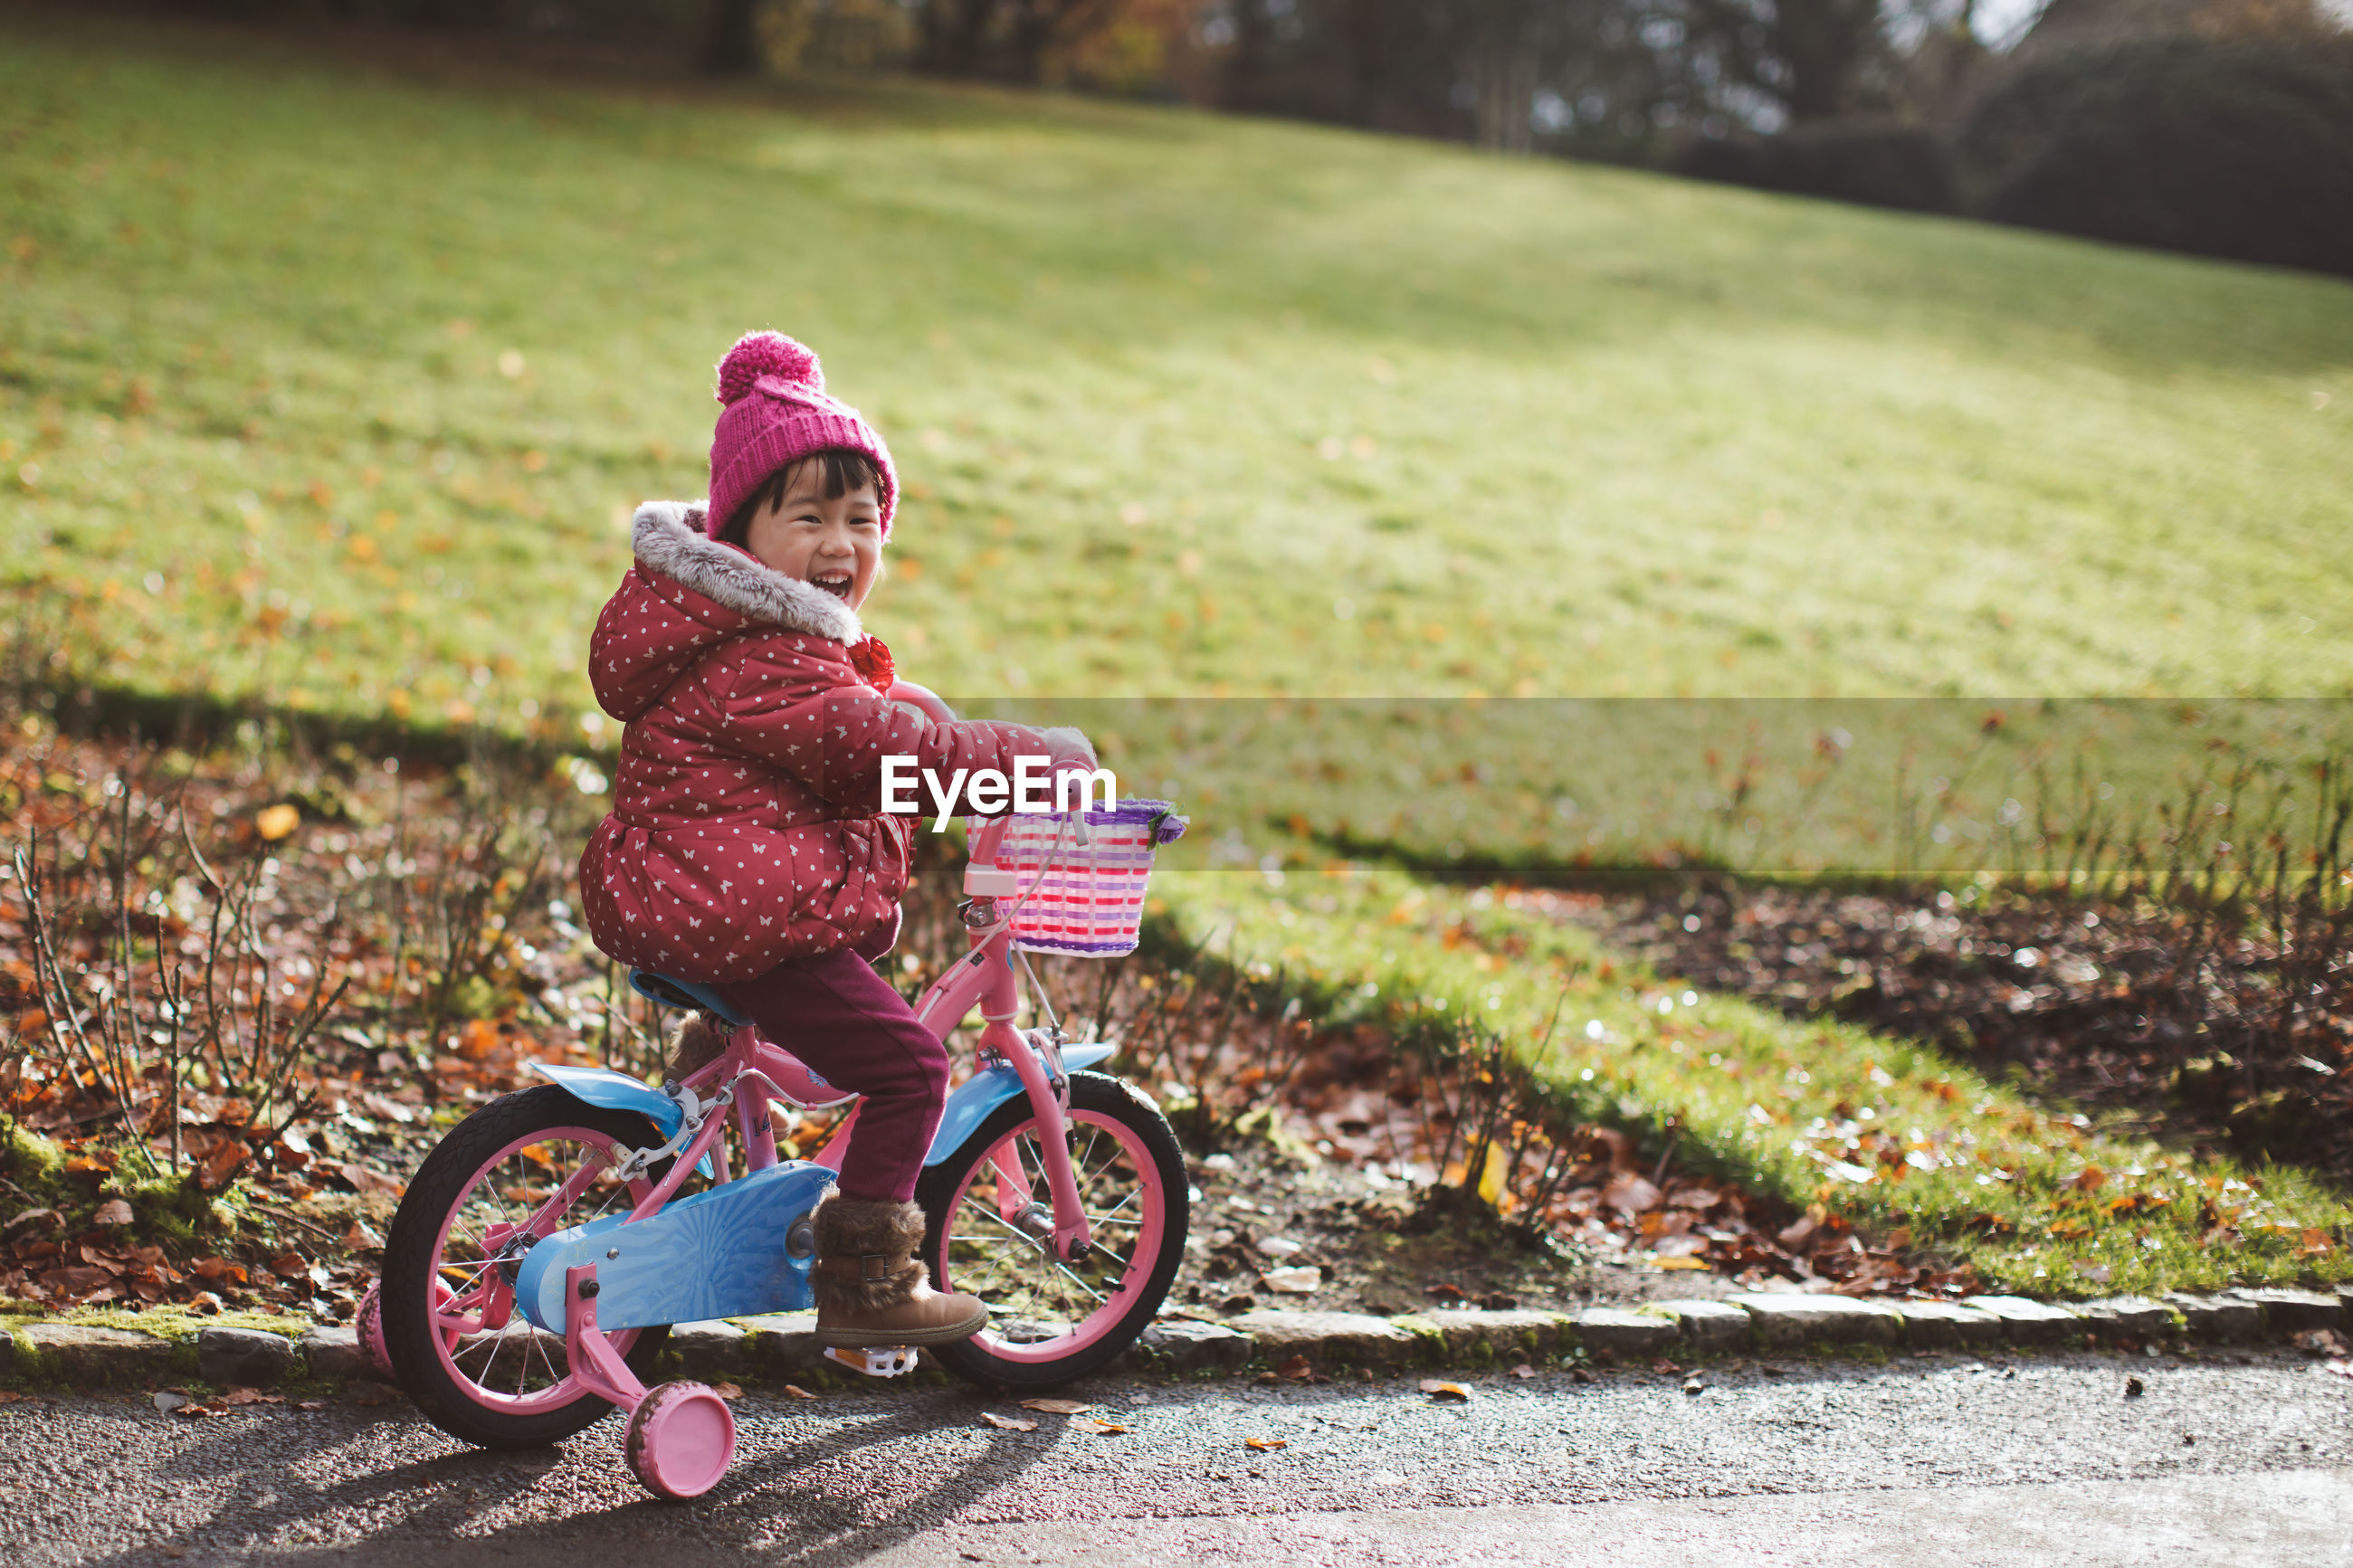 Portrait of girl riding bicycle on road